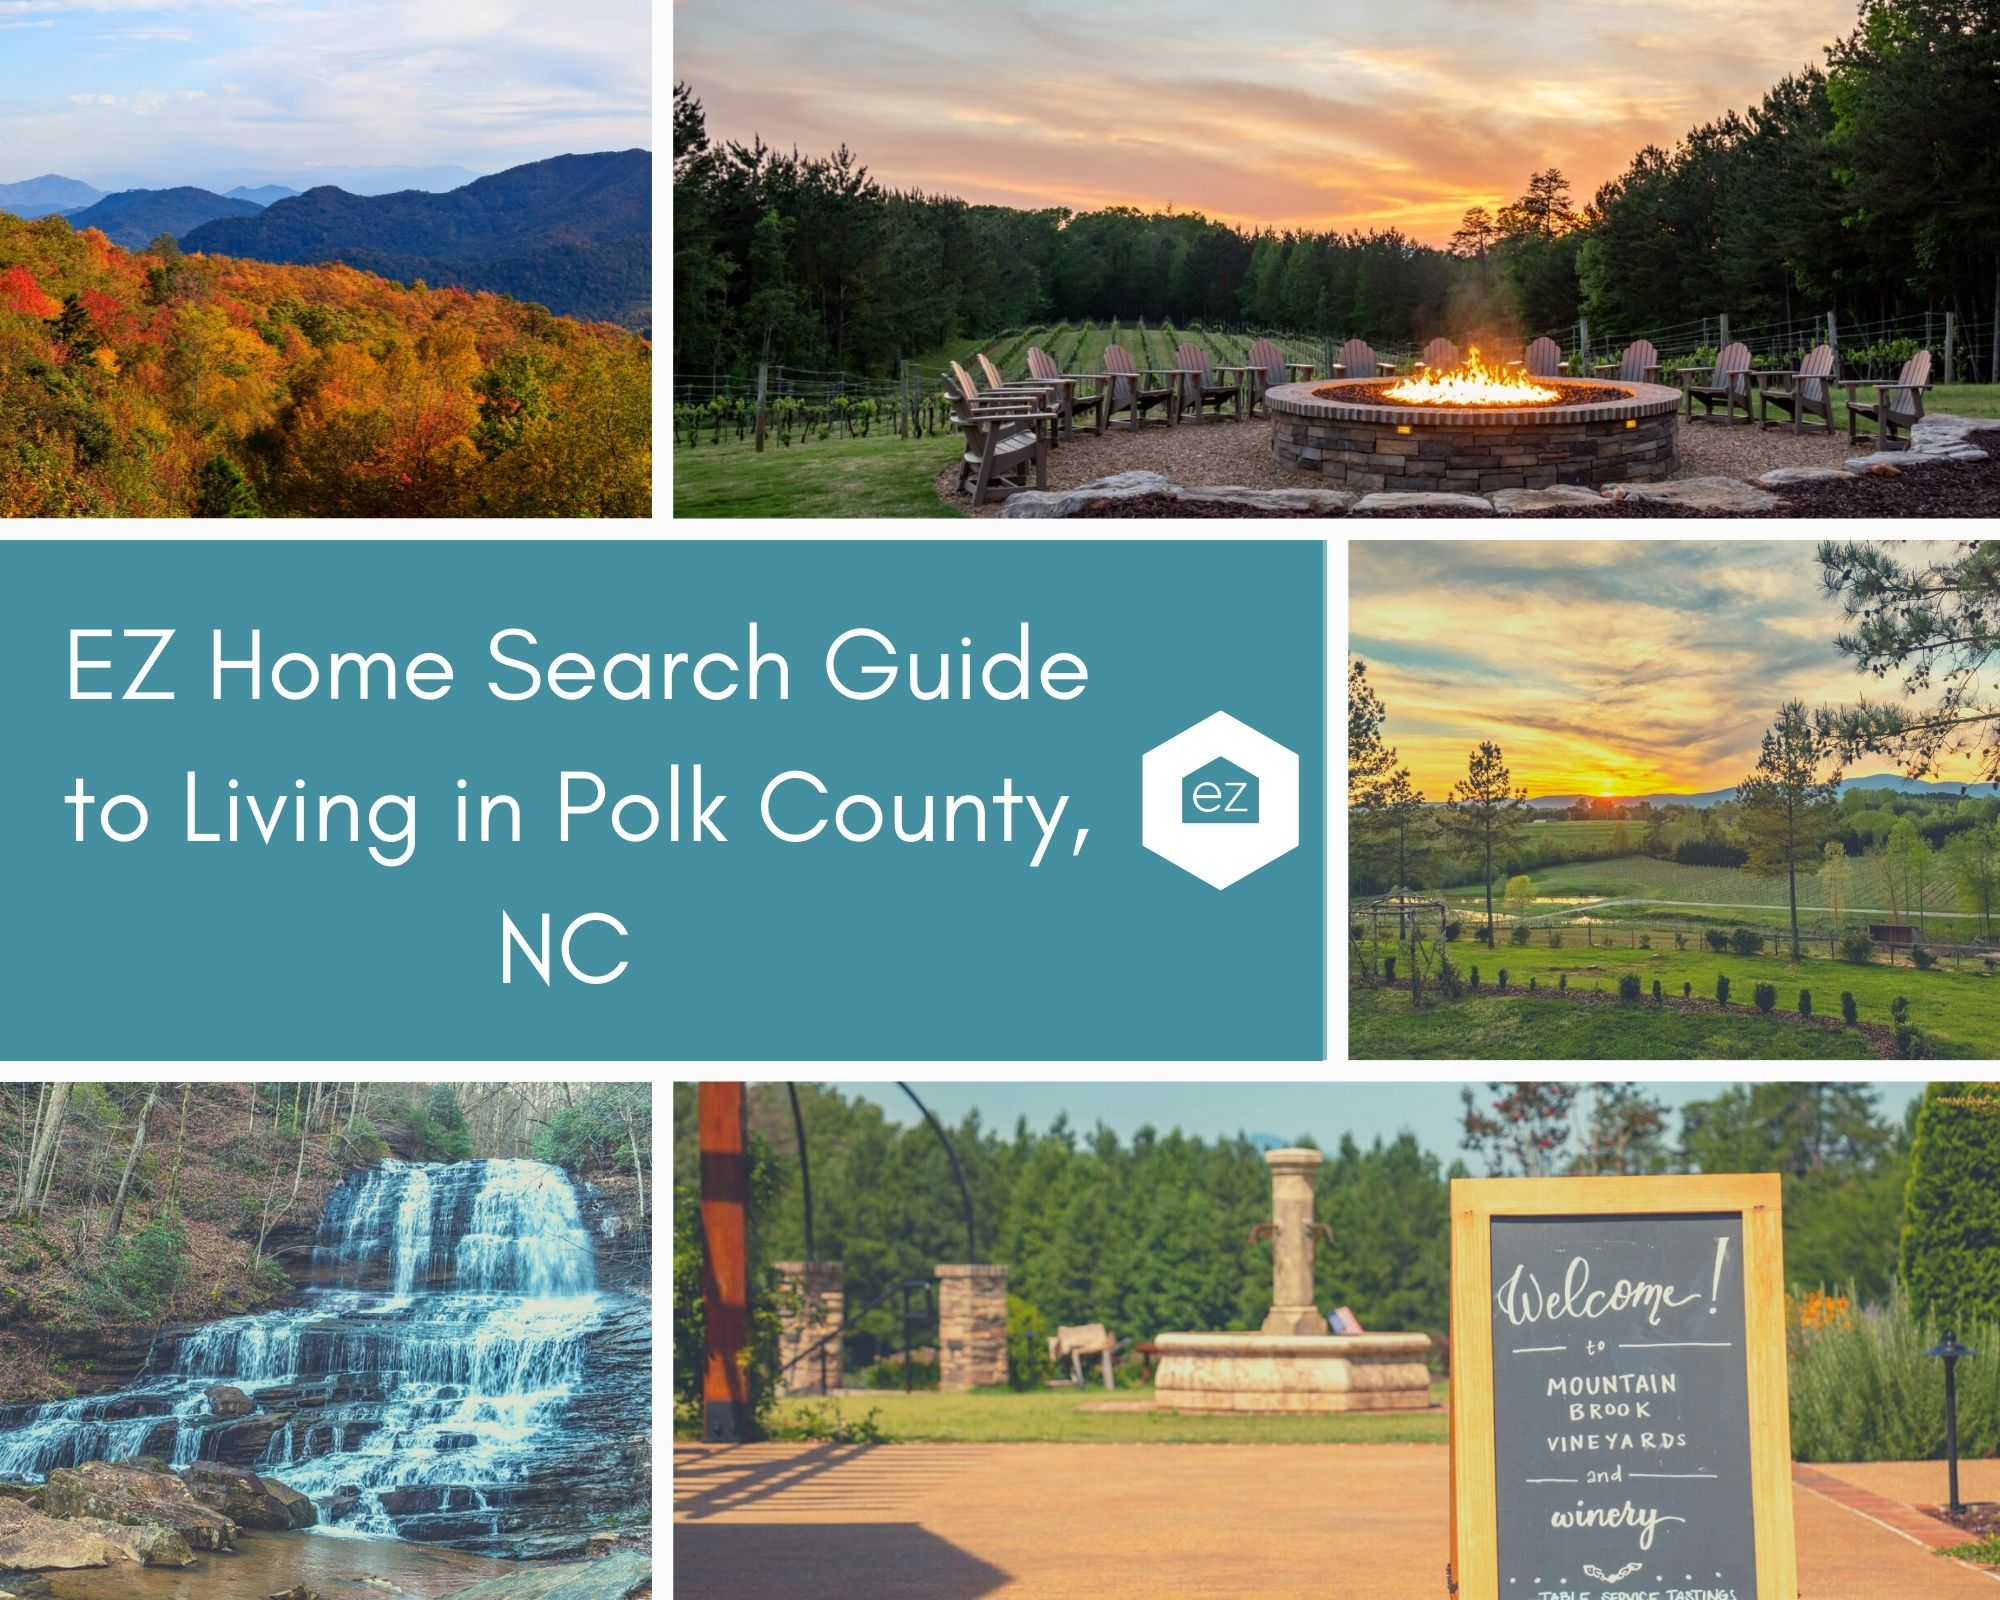 Photos taken from Polk County, NC of mountains, waterfall, and vineyards